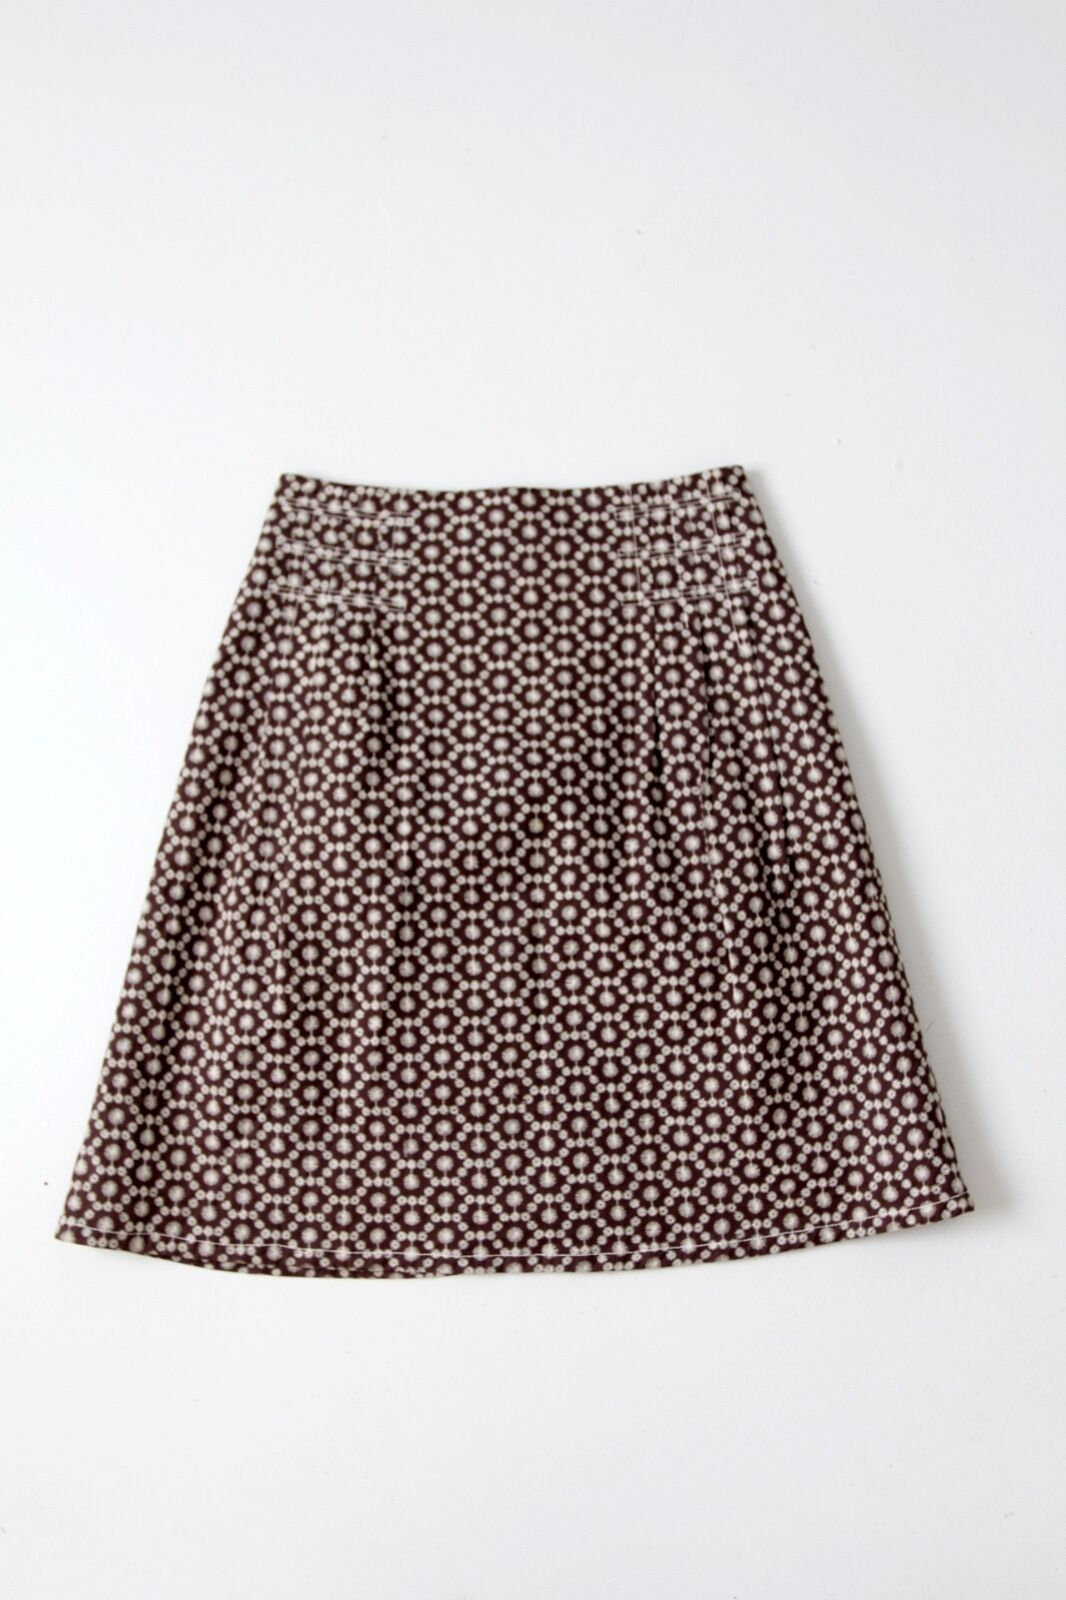 Carolina Herrera a-line skirt embroidered cotton above the knee skirt size 8